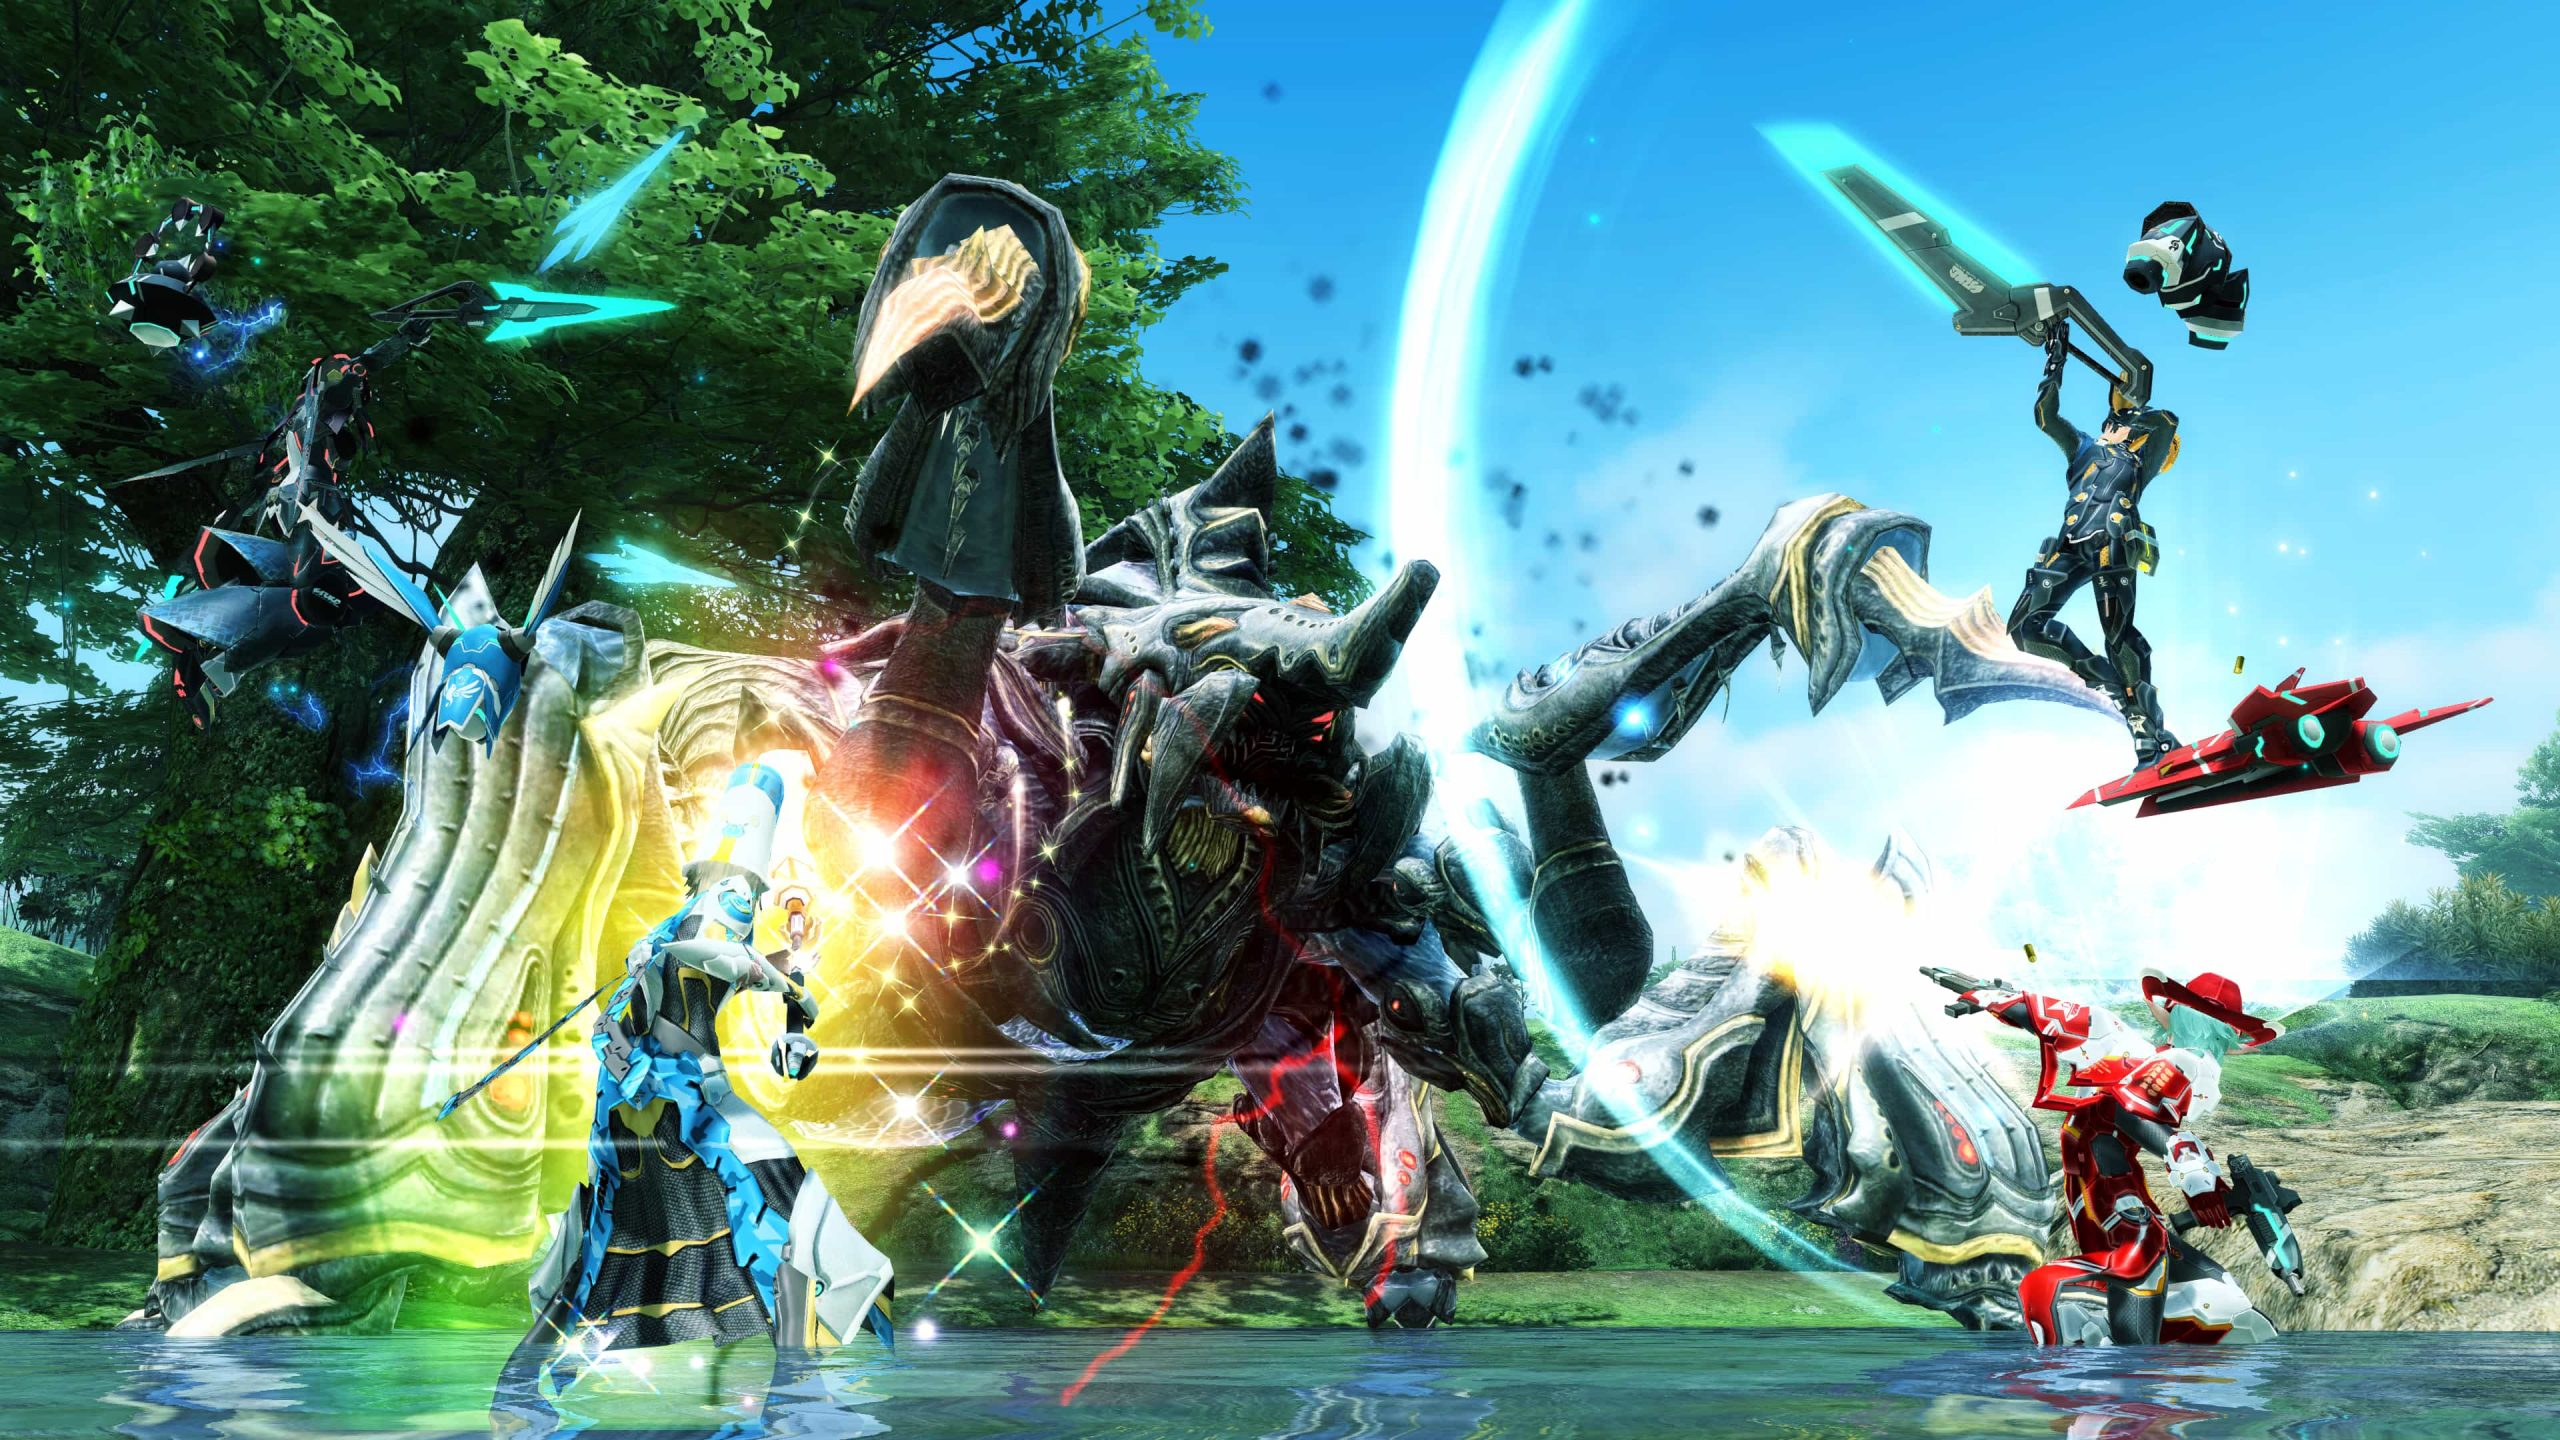 38 Games Like Phantasy Star Online 2 for PlayStation 4 ...